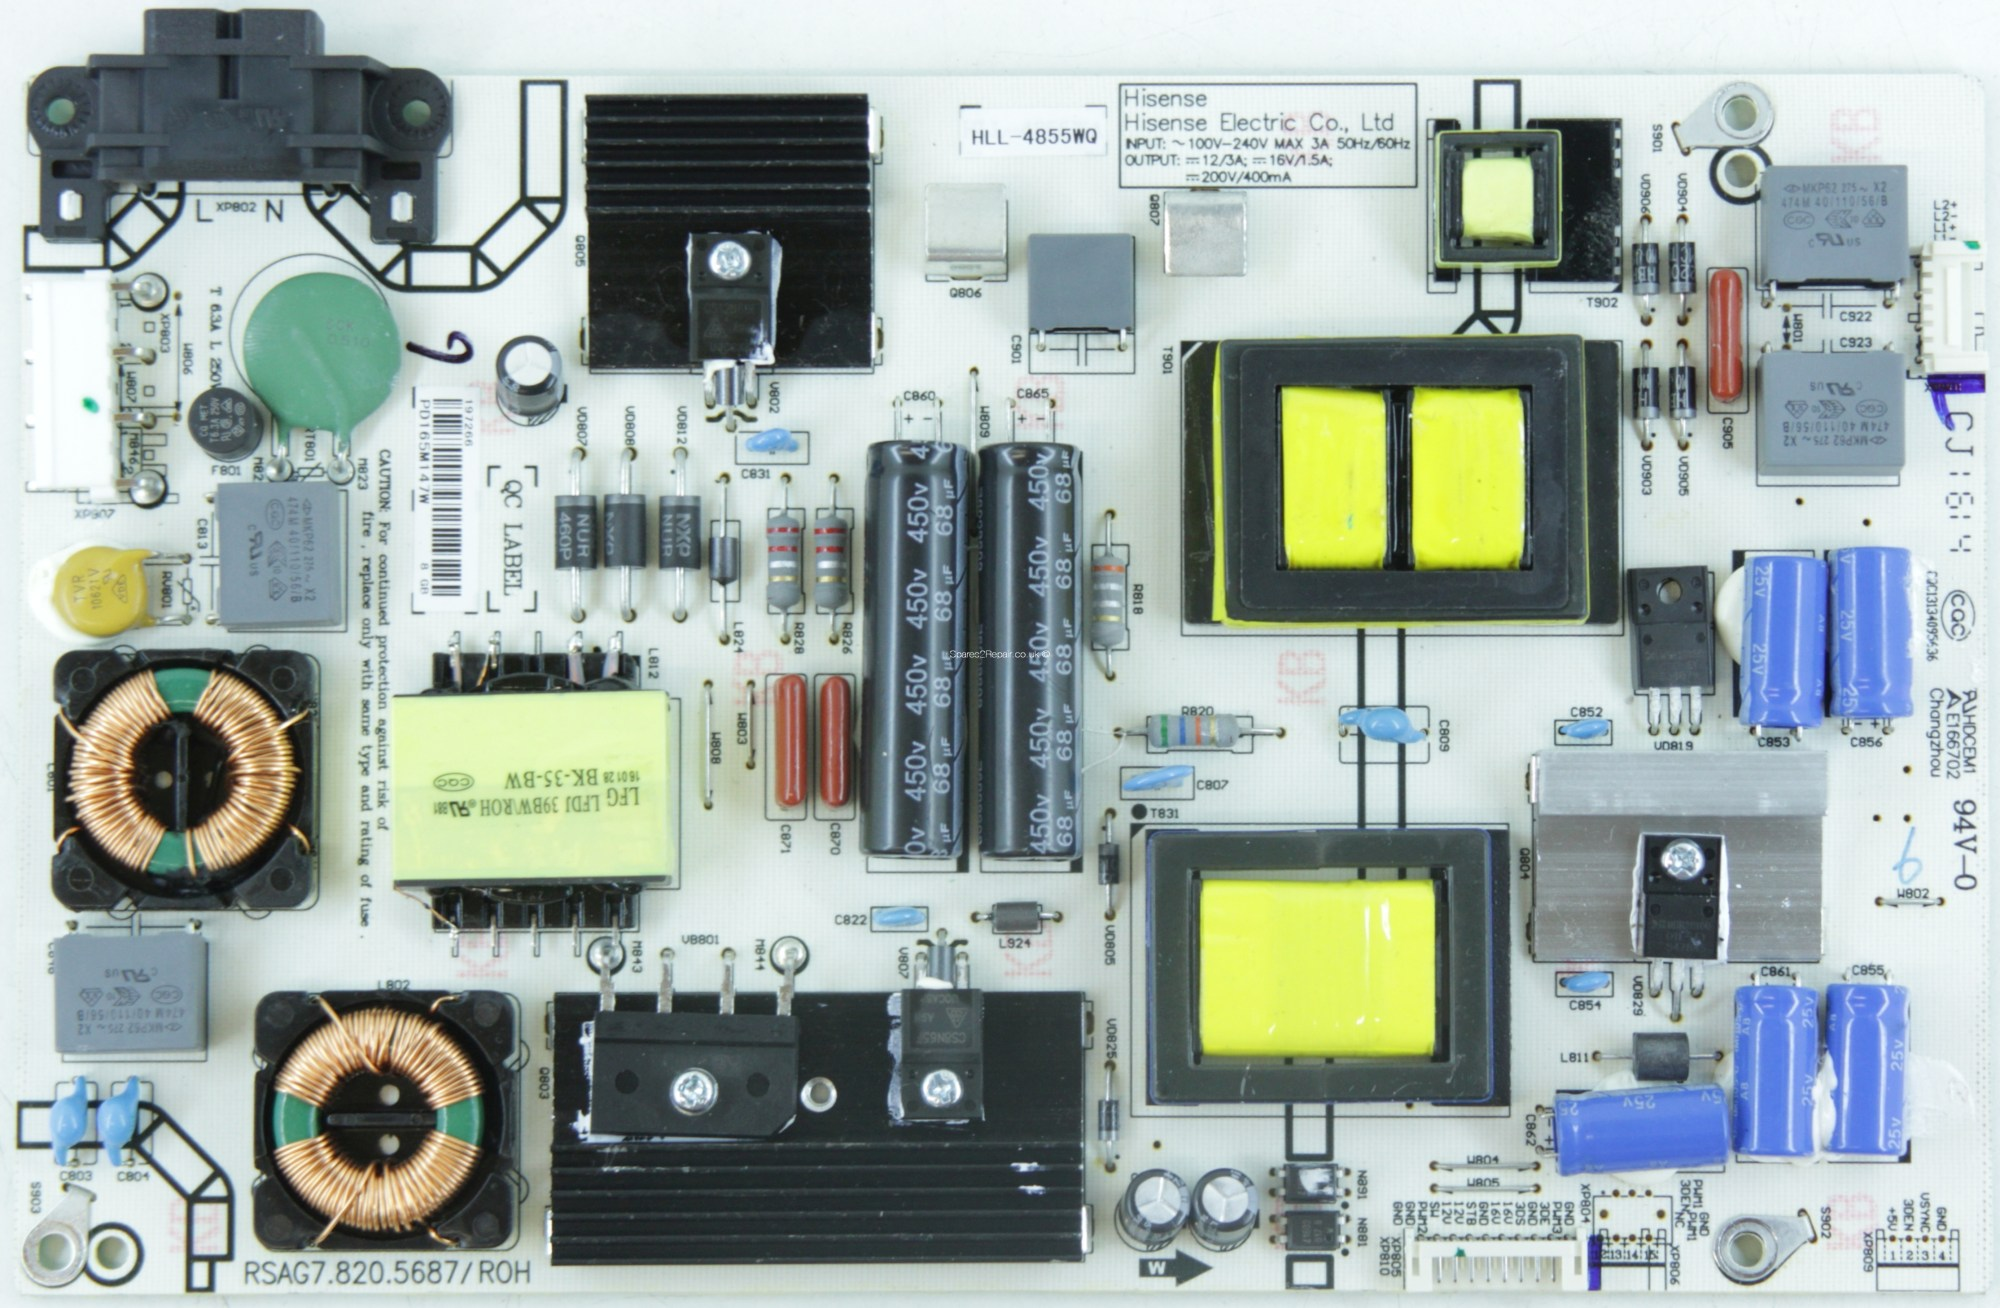 hight resolution of hisense h49m3000 power supply hll 4855wq pd165m147w rsag7 3d led tv hisense led tv schematic diagram